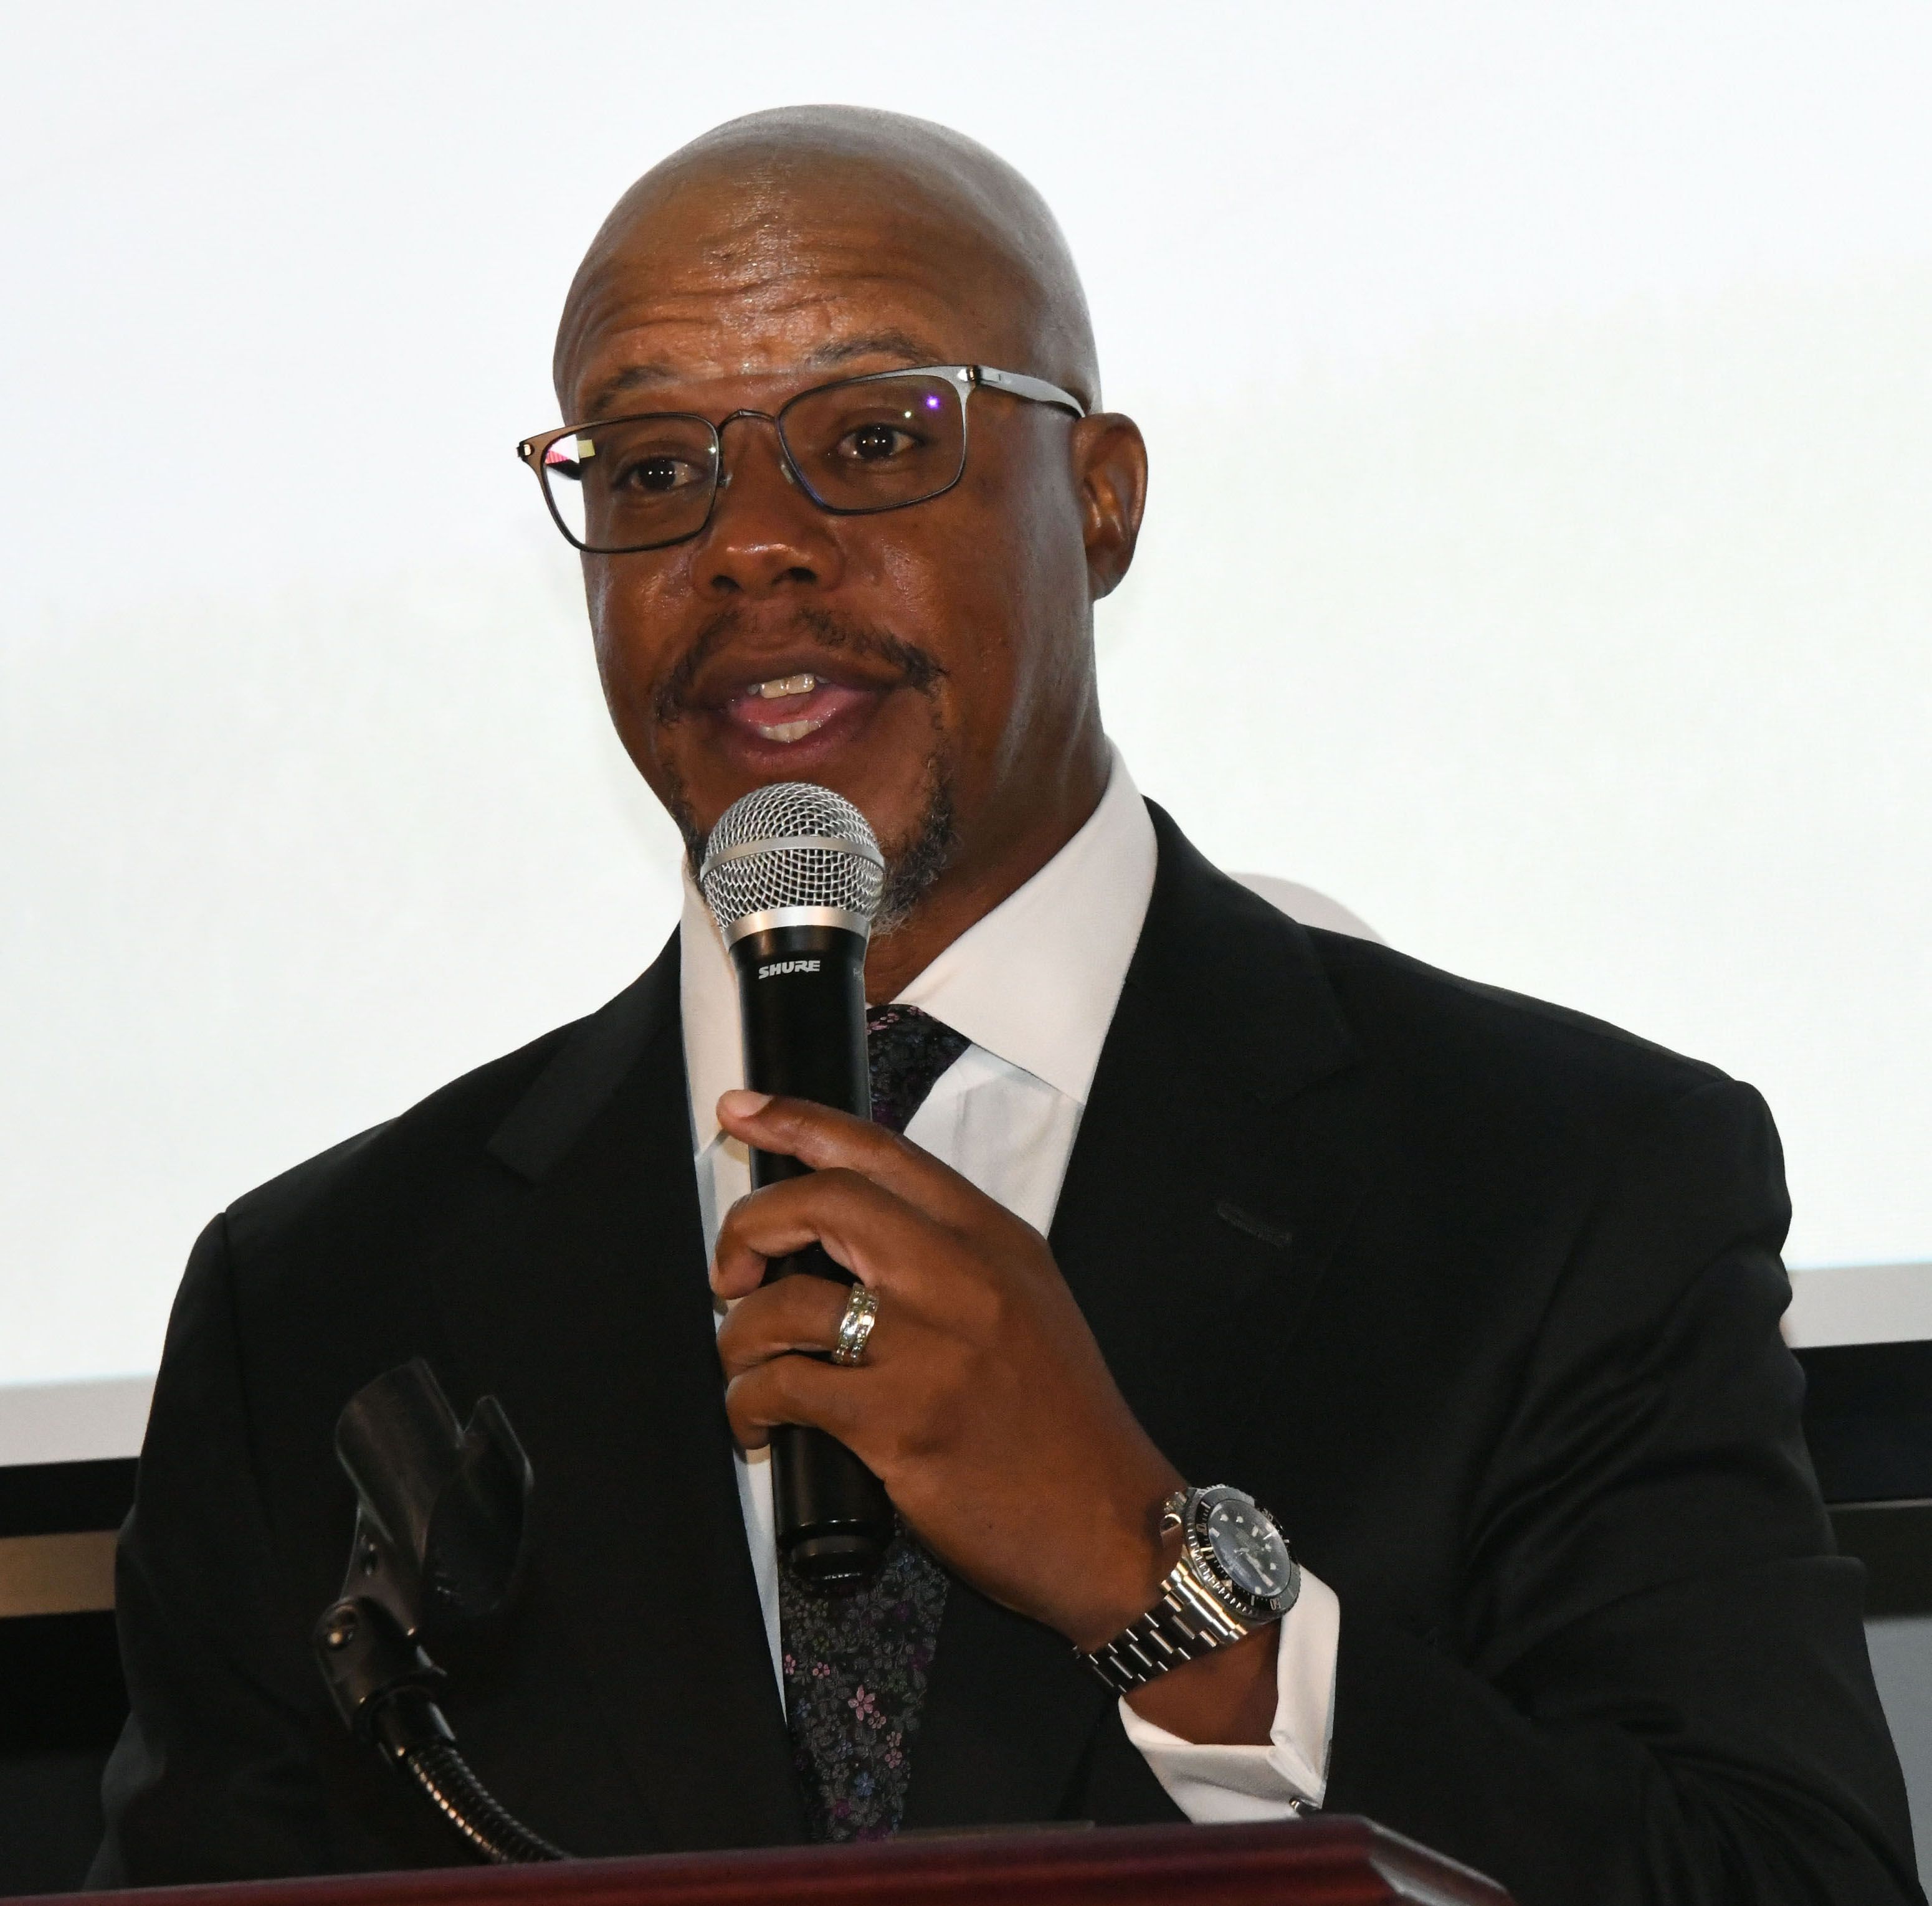 Dr. William Curtis, keynote speaker, lives turned upside down may be God's way of redefining one's role in life.